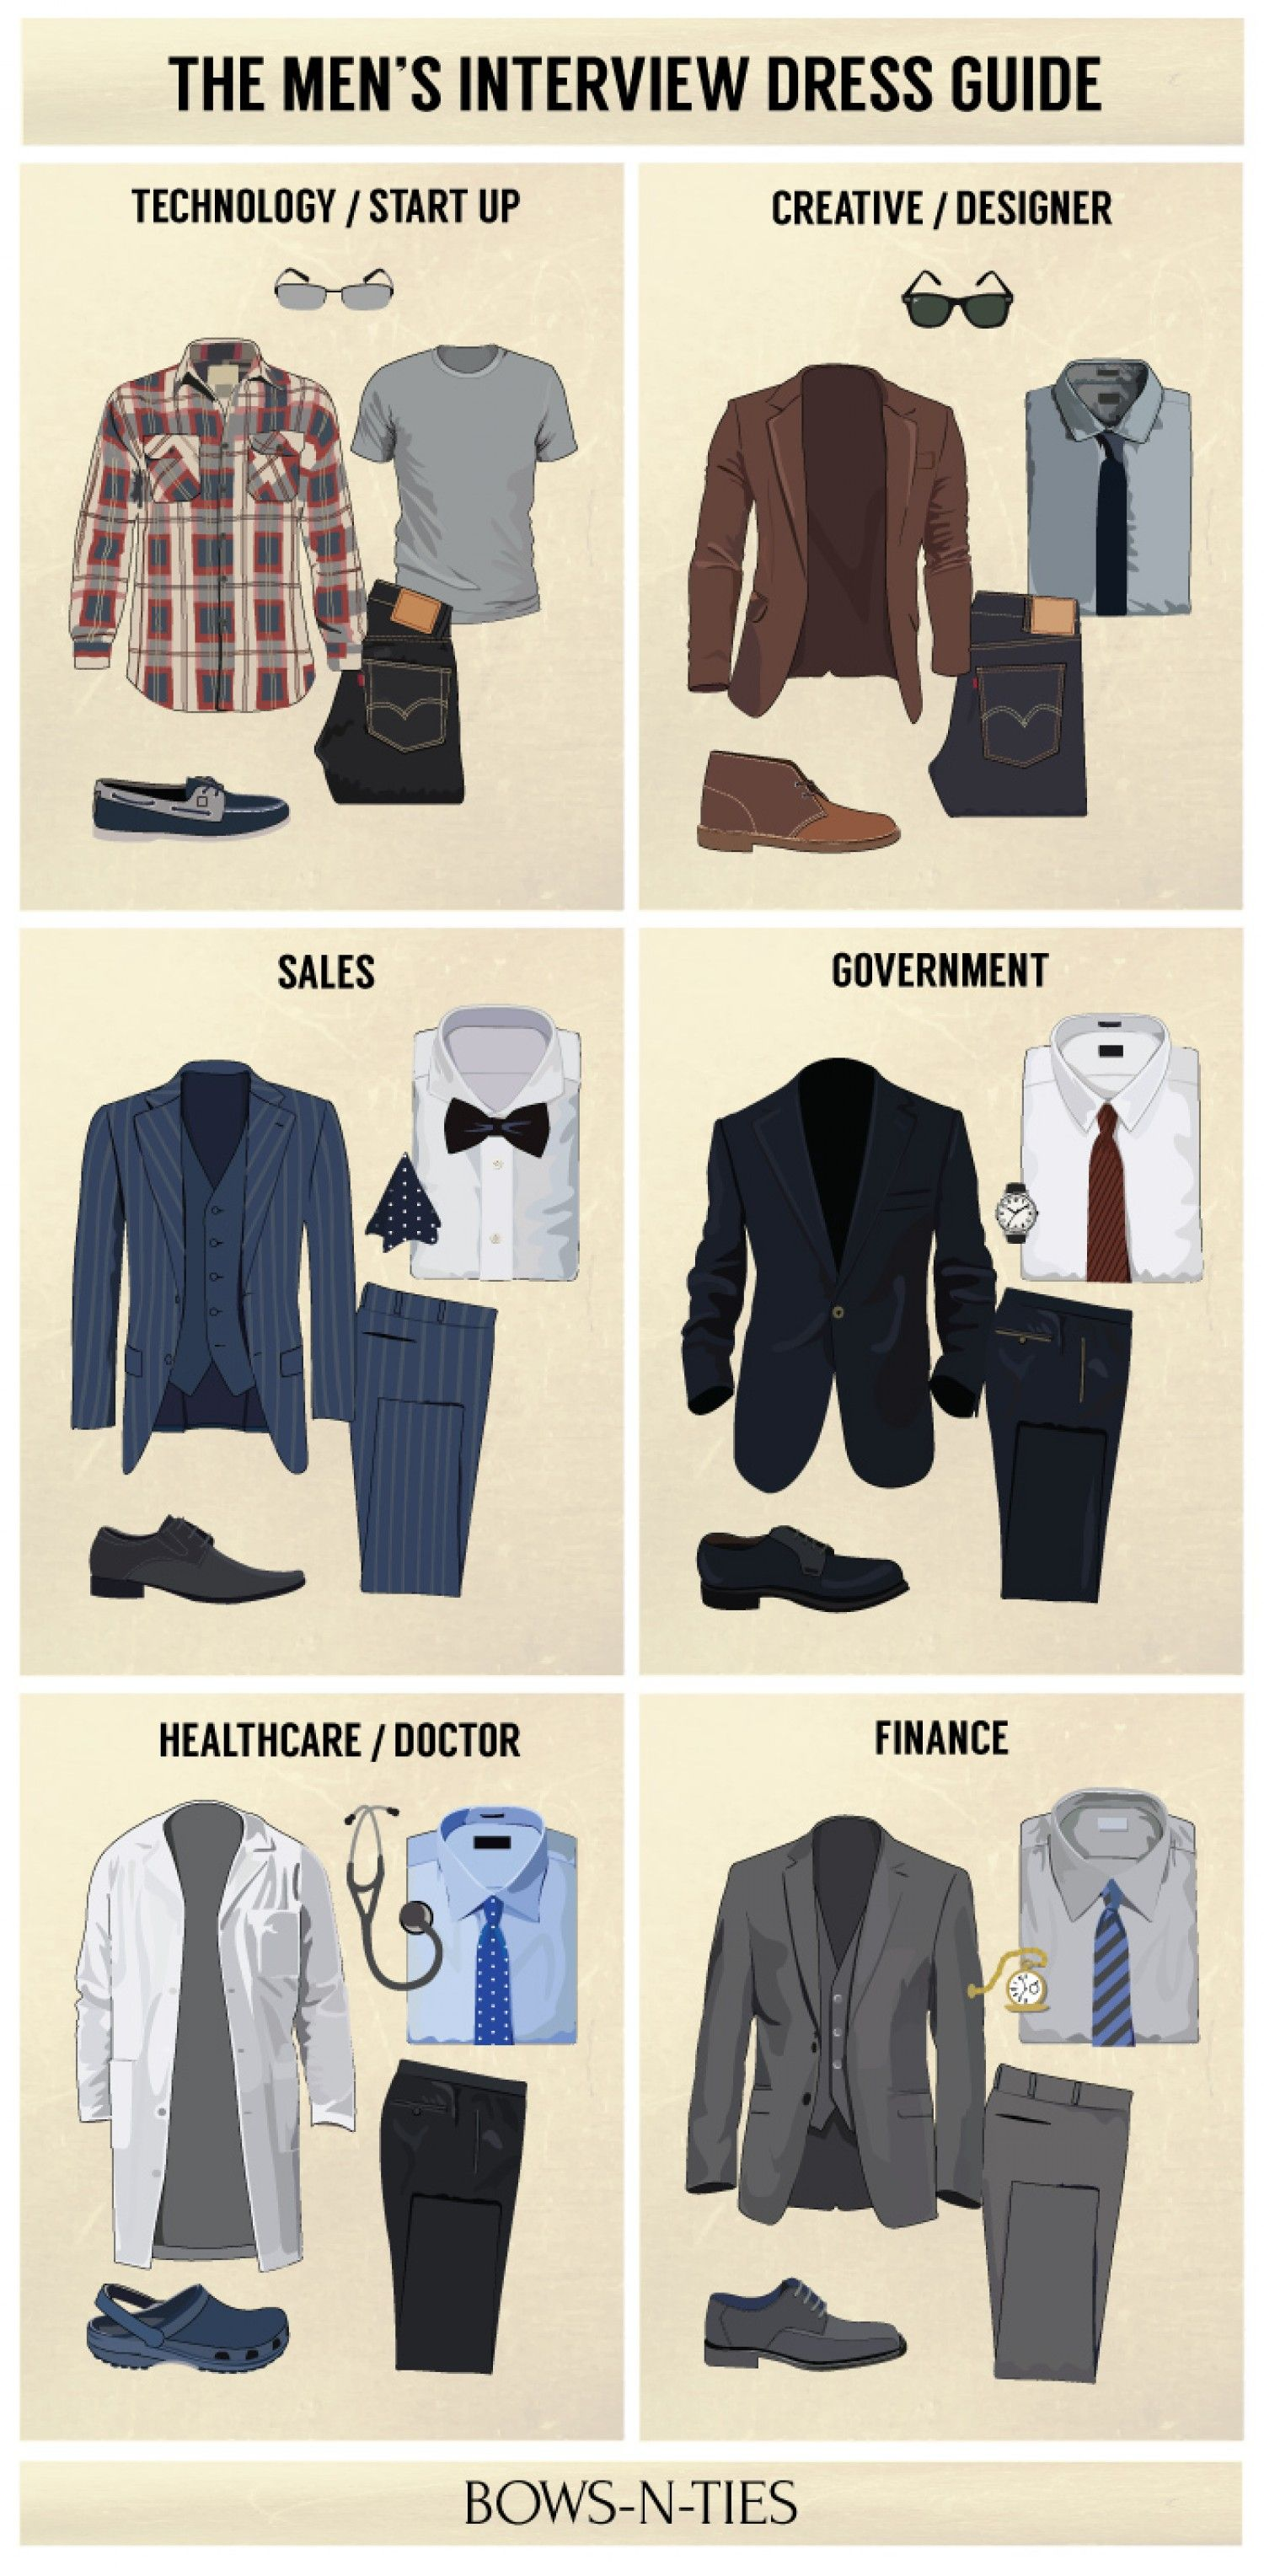 men s interview dress code visual infographic infographic career